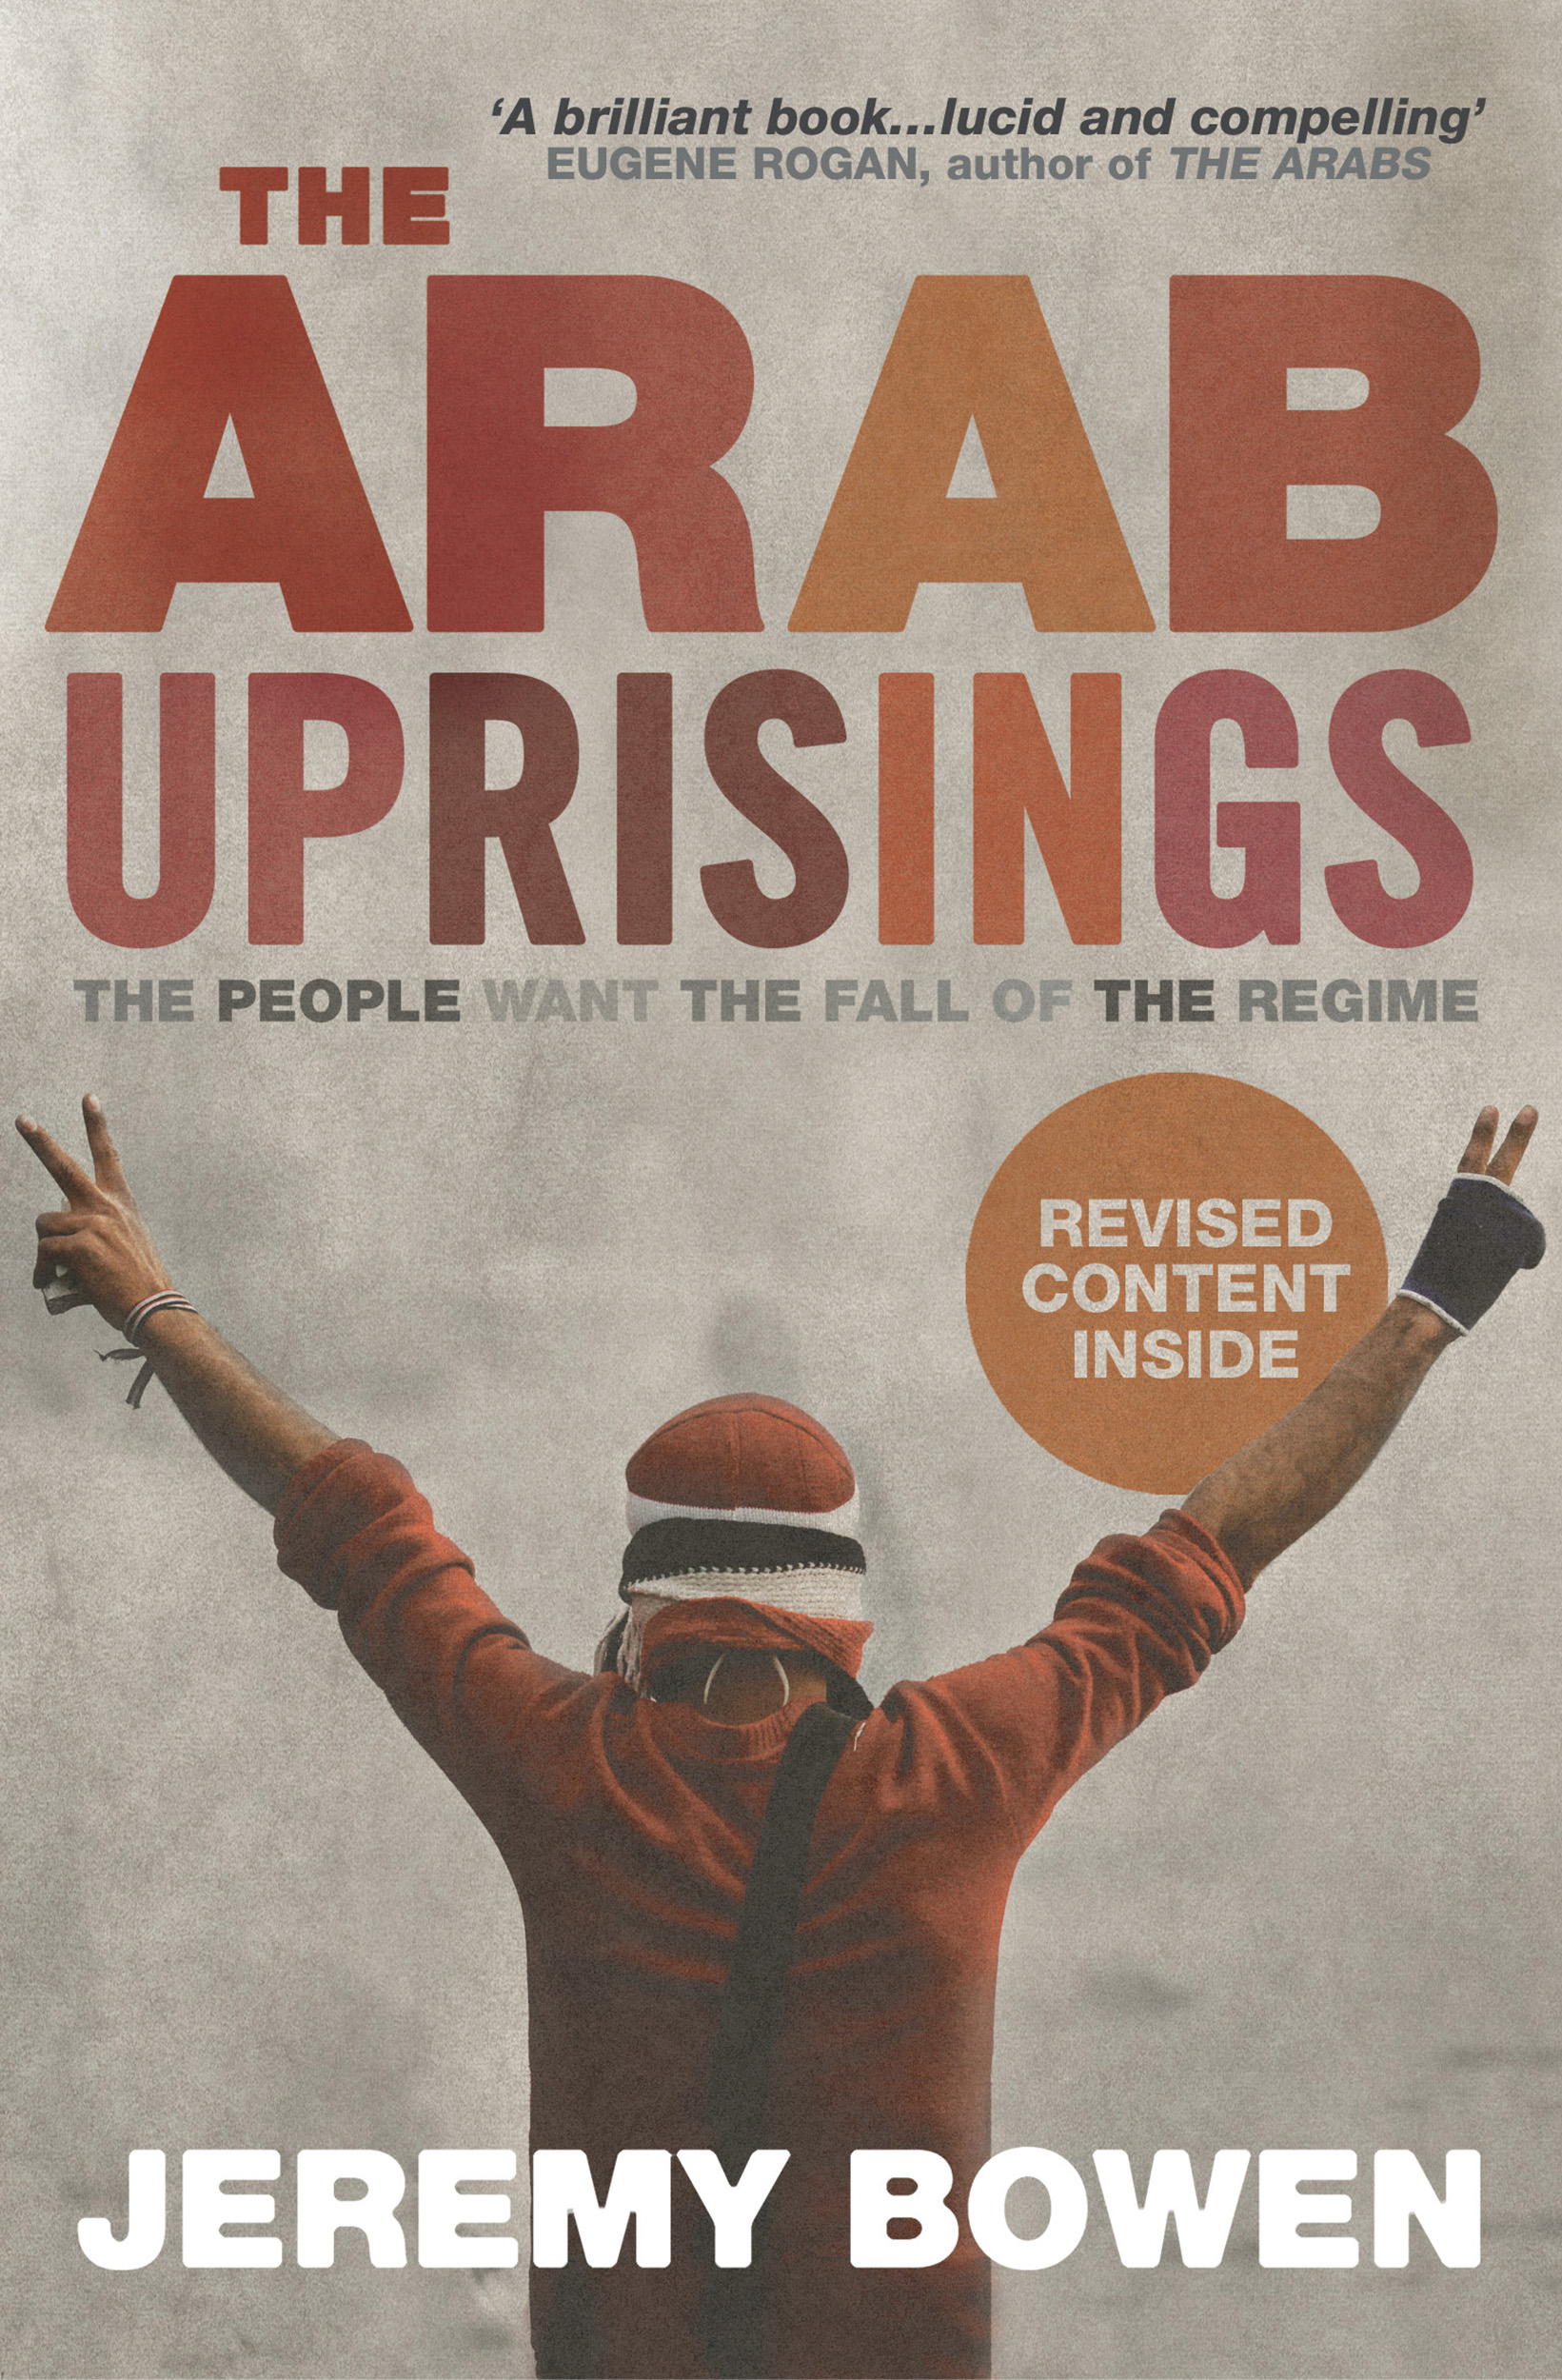 The arab uprisings book review essay help zdessayczesebasketball the arab uprisings book review fandeluxe Choice Image